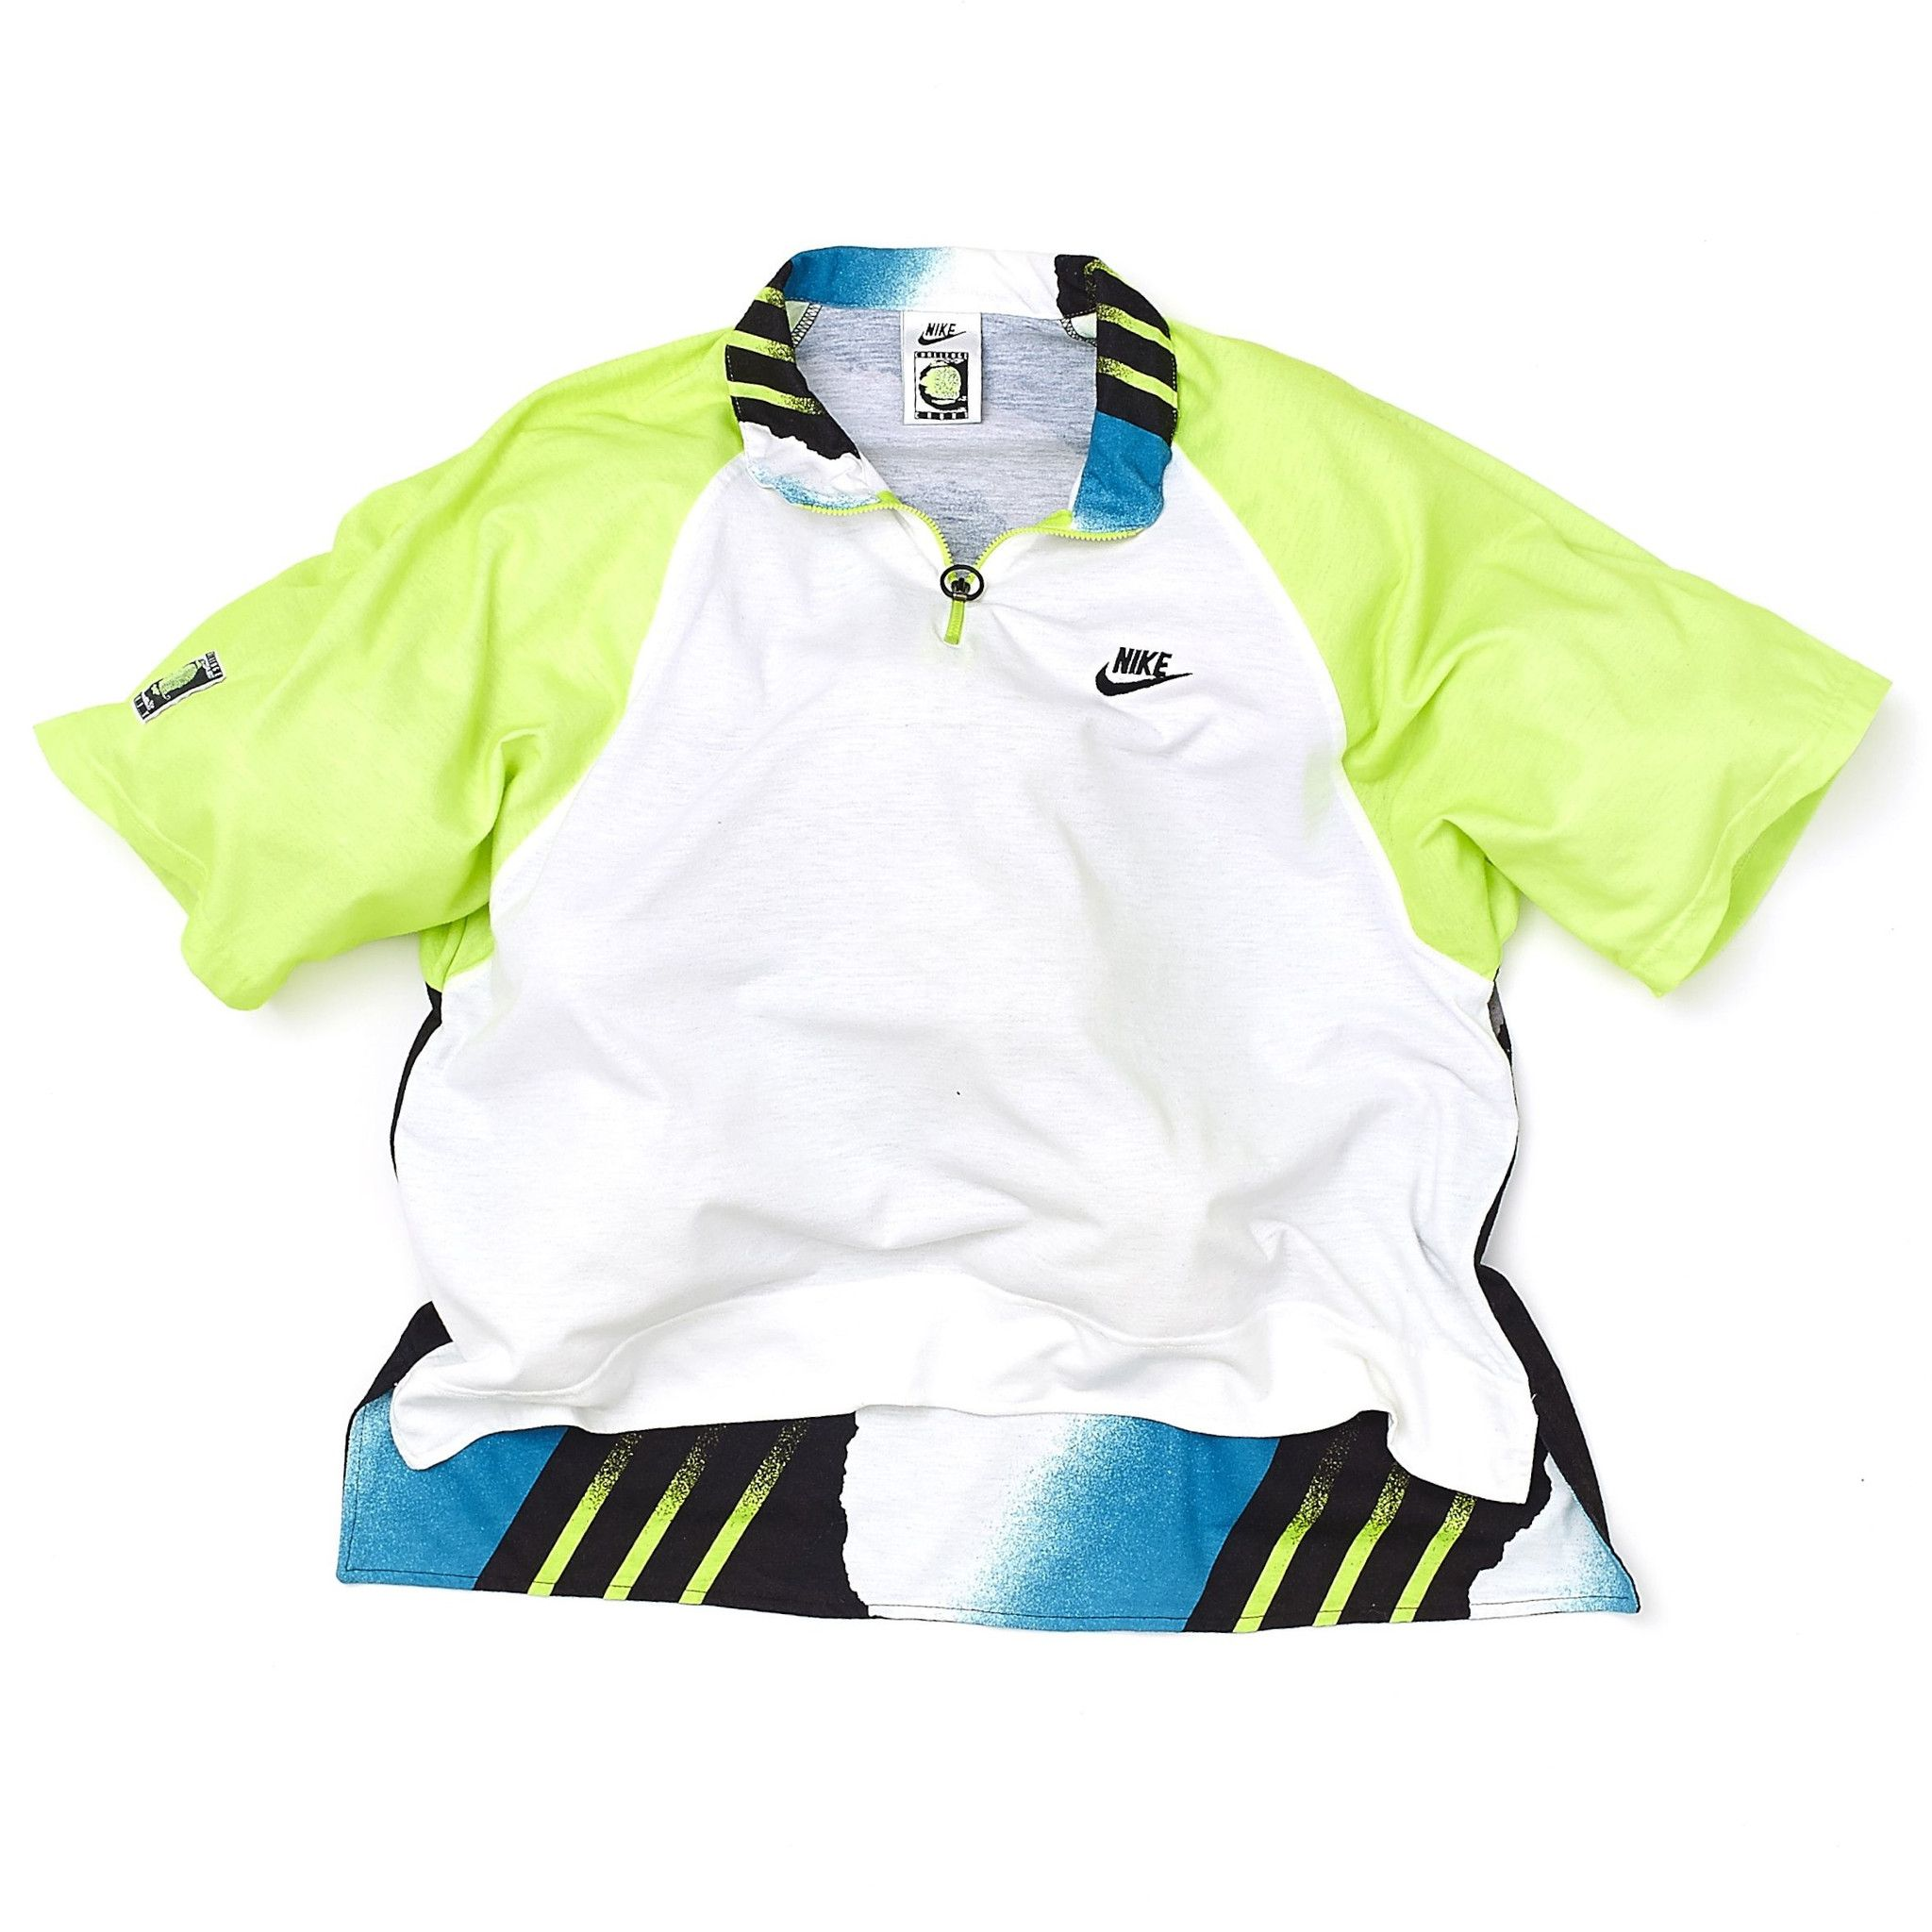 ed15fa2c59ad Nike Air Tech Challenge Court Polo Shirt - White   Neon Yellow   Blue    Black - 1990s